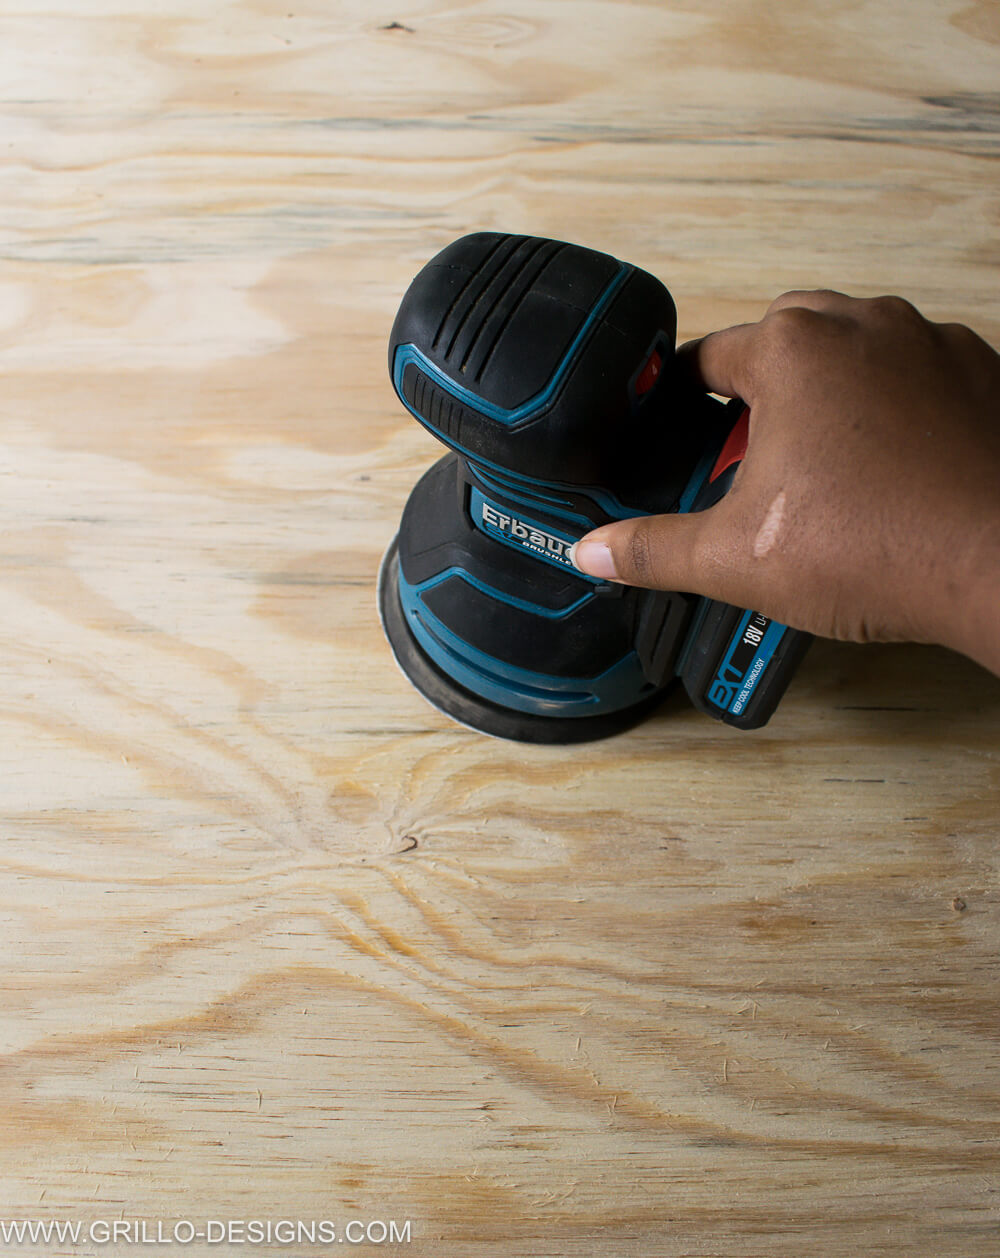 Grind the plywood board with a grinder